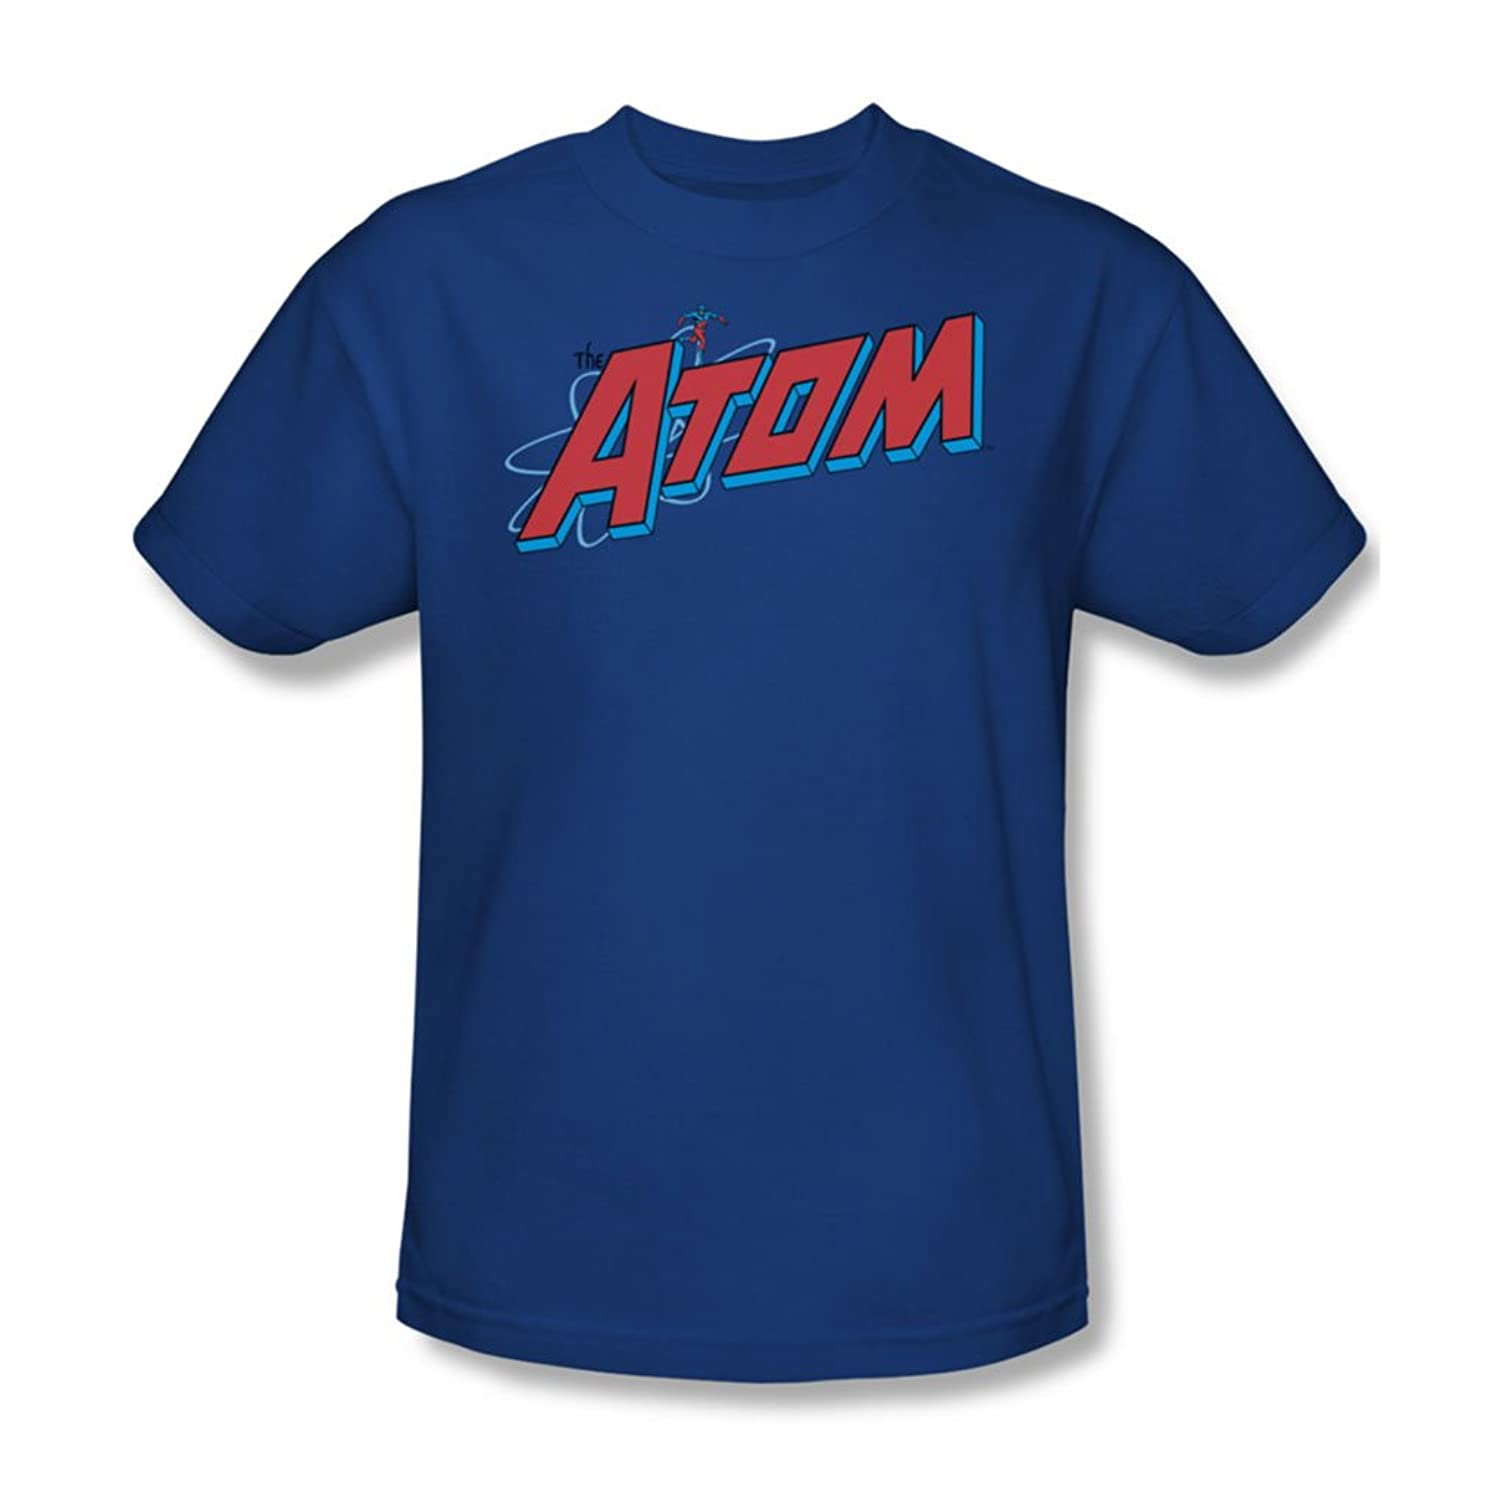 Dc Comics - The Atom Adult T-Shirt In Royal Blue